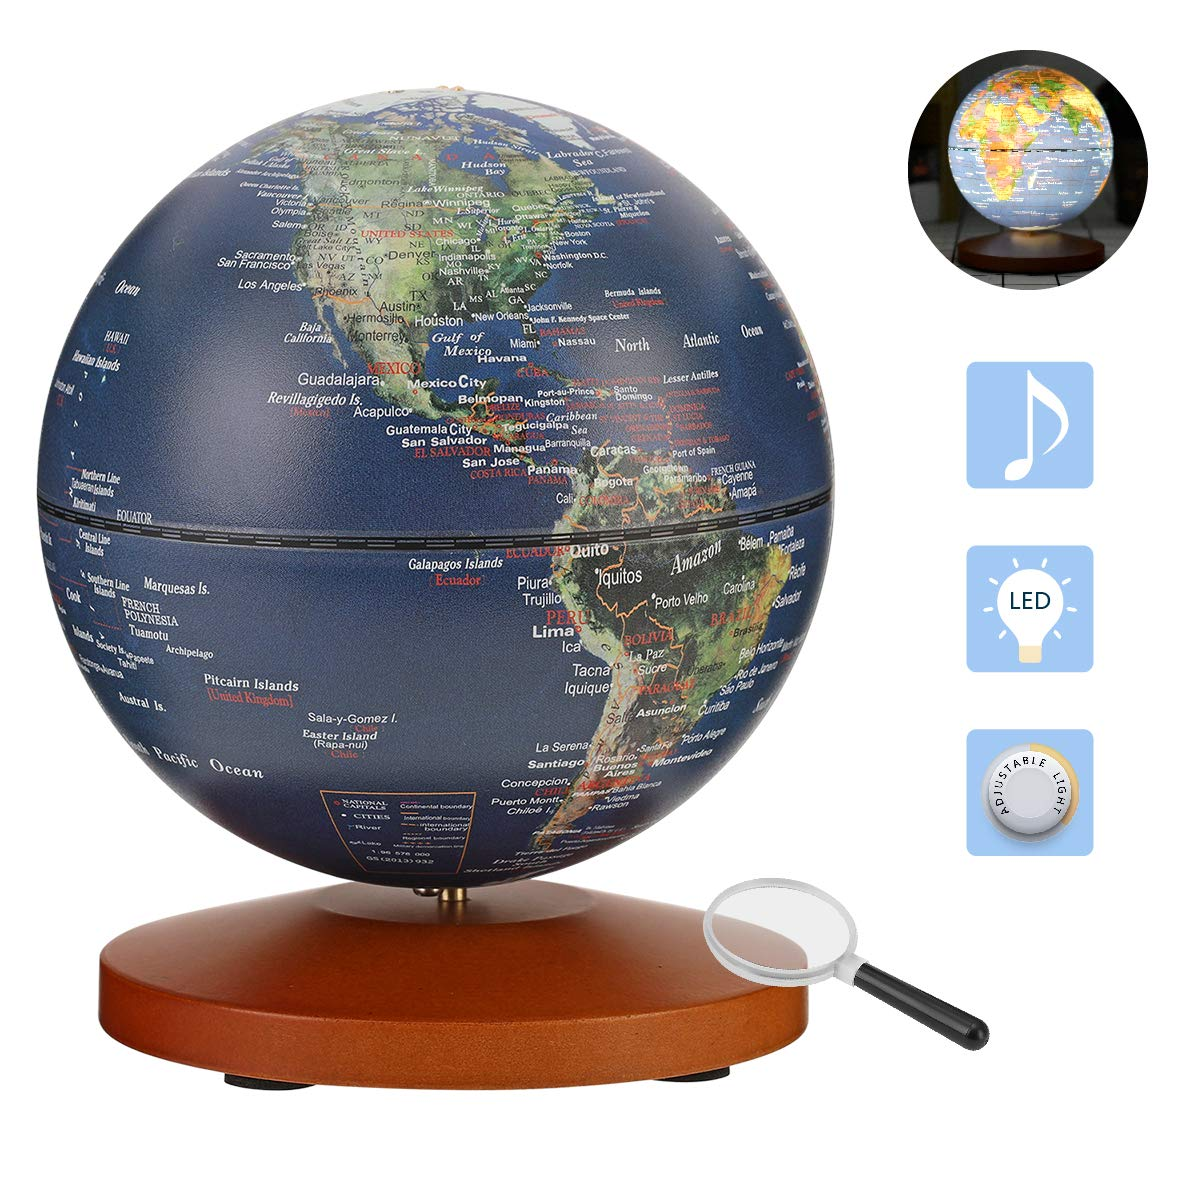 FUN GLOBE 3 in 1 Illuminated World Globe Desktop Decoration Geographic Interactive Earth Globes Office Supplies Holiday Gift with Adjustable LED & Light Music s for for Kids & Adult Navy 5 in by FUN GLOBE